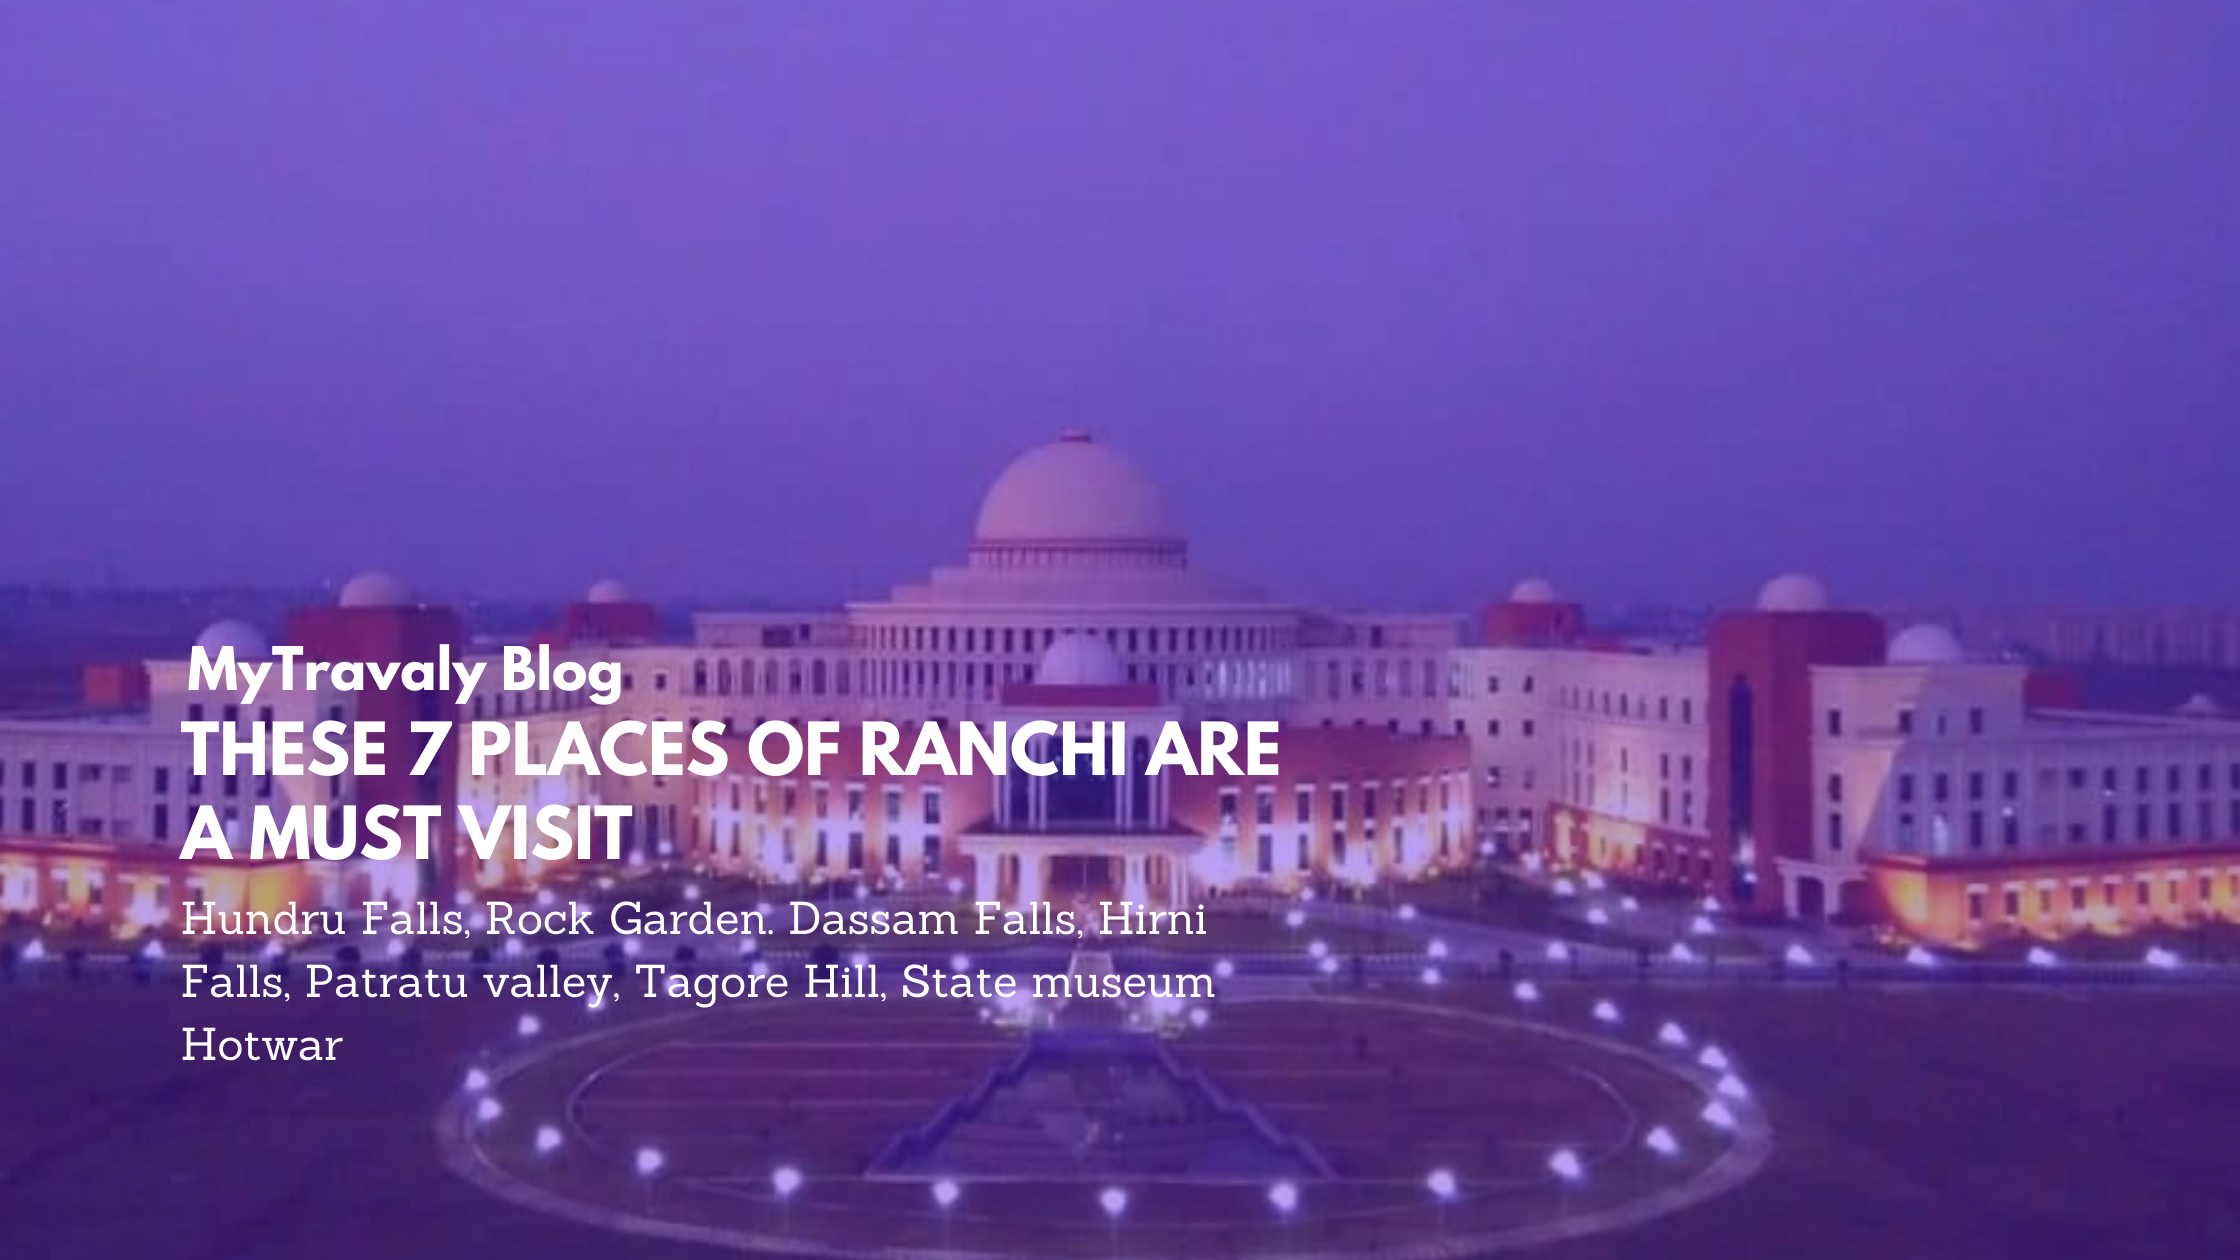 These 7 places of Ranchi are a must visit